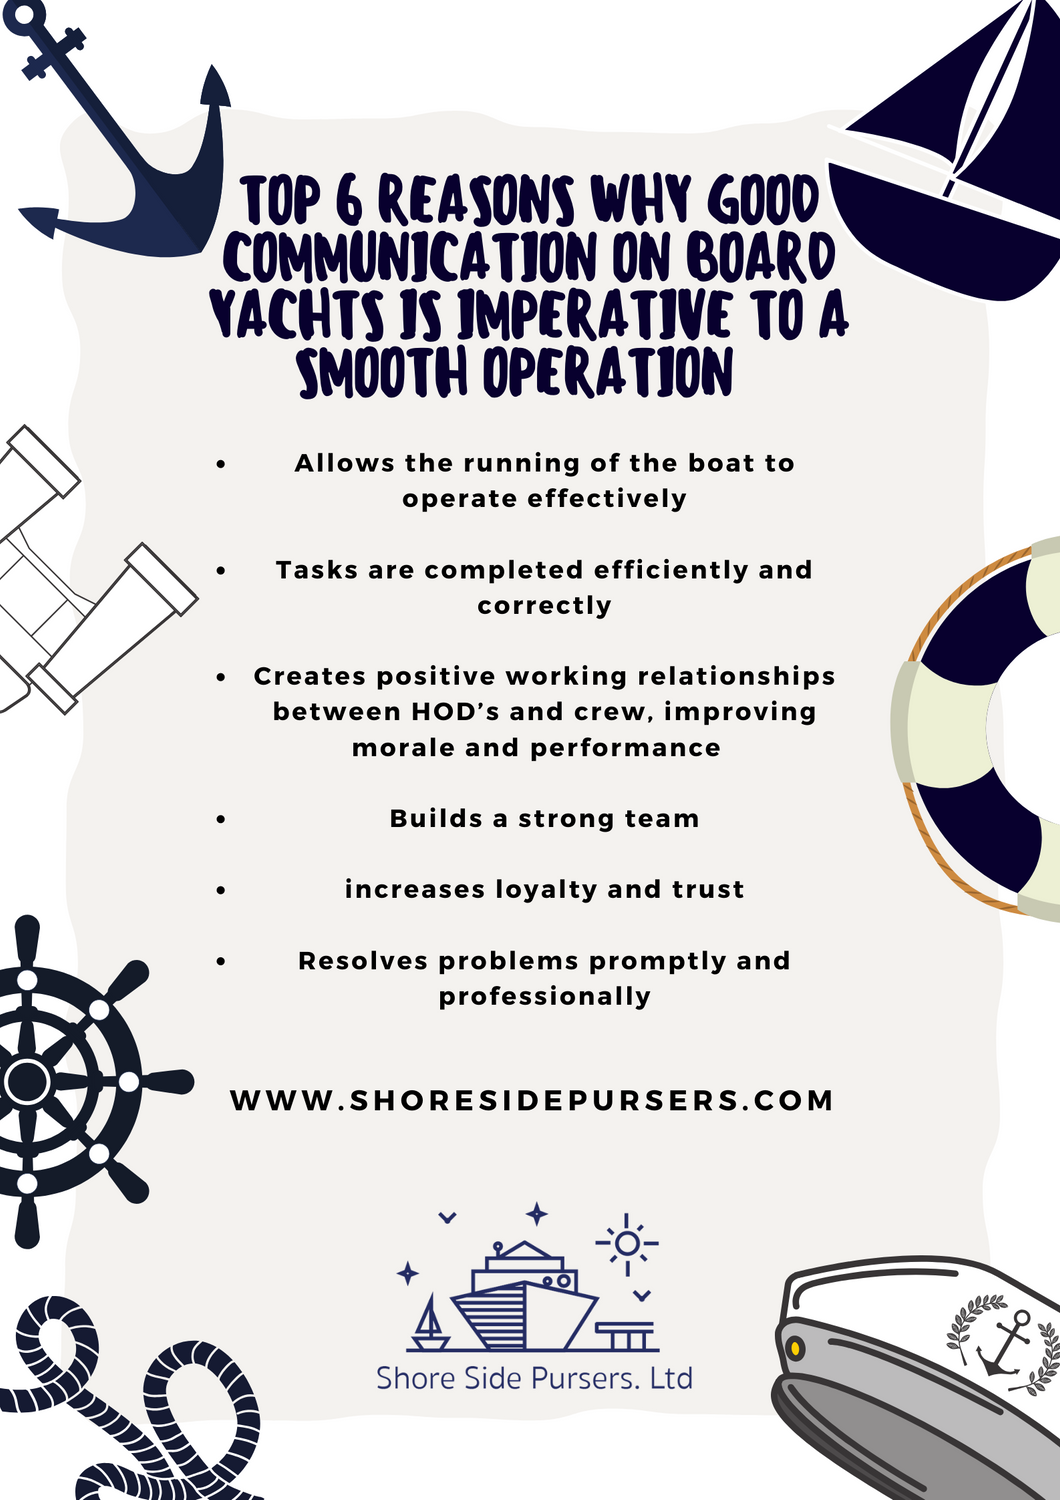 32. Top 6 reasons why good communication on board yachts is imperative to a smooth operation_png